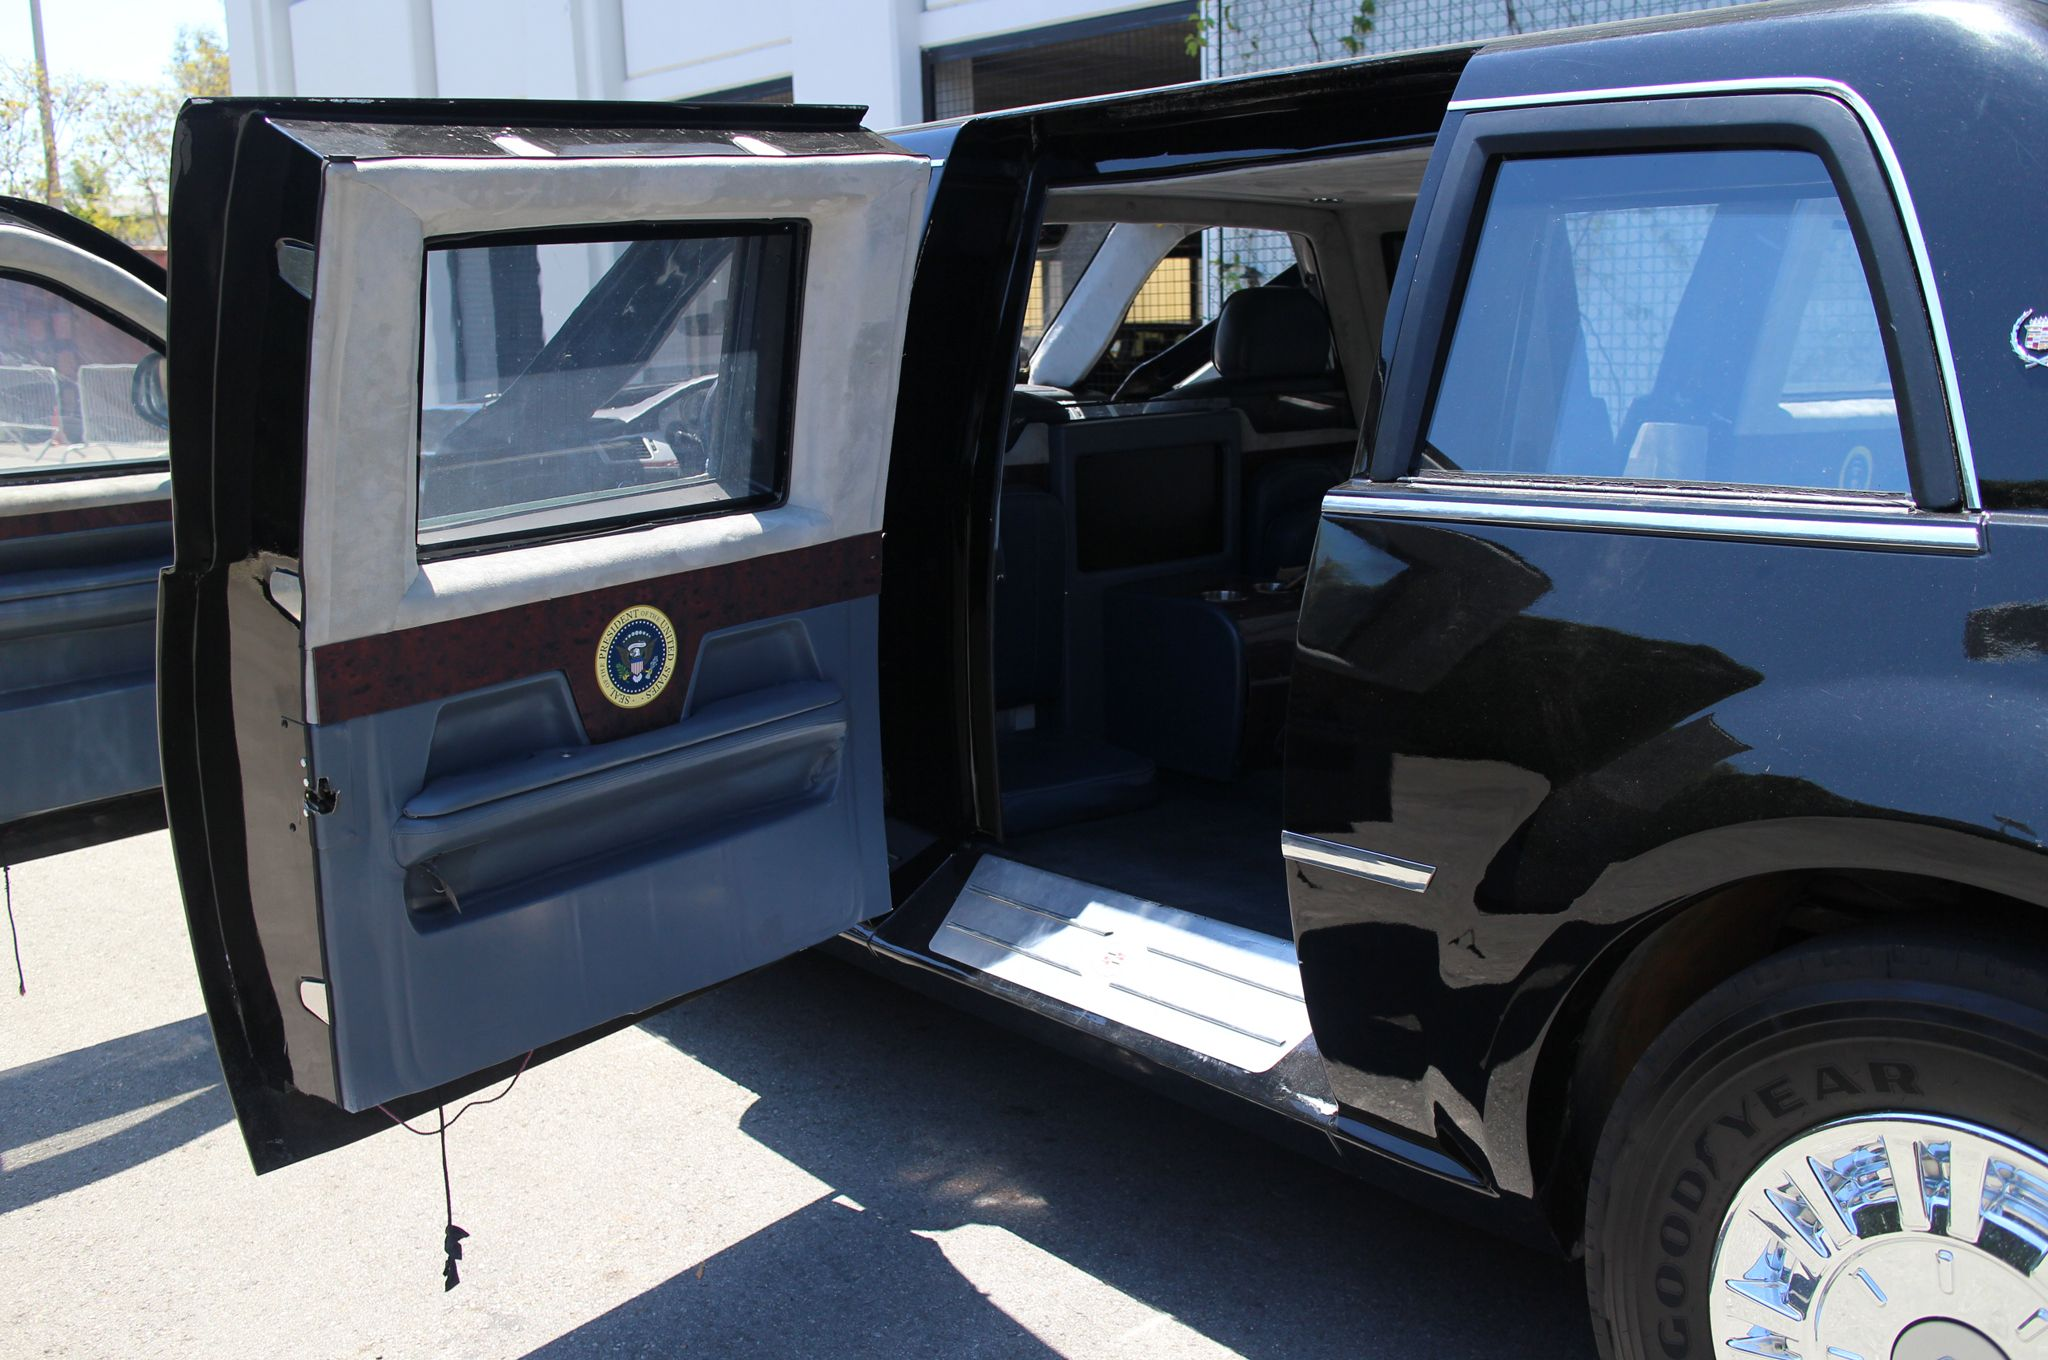 Cadillac-Presidential-Limo-The-Beast-White-House-Down-replica-rear ...